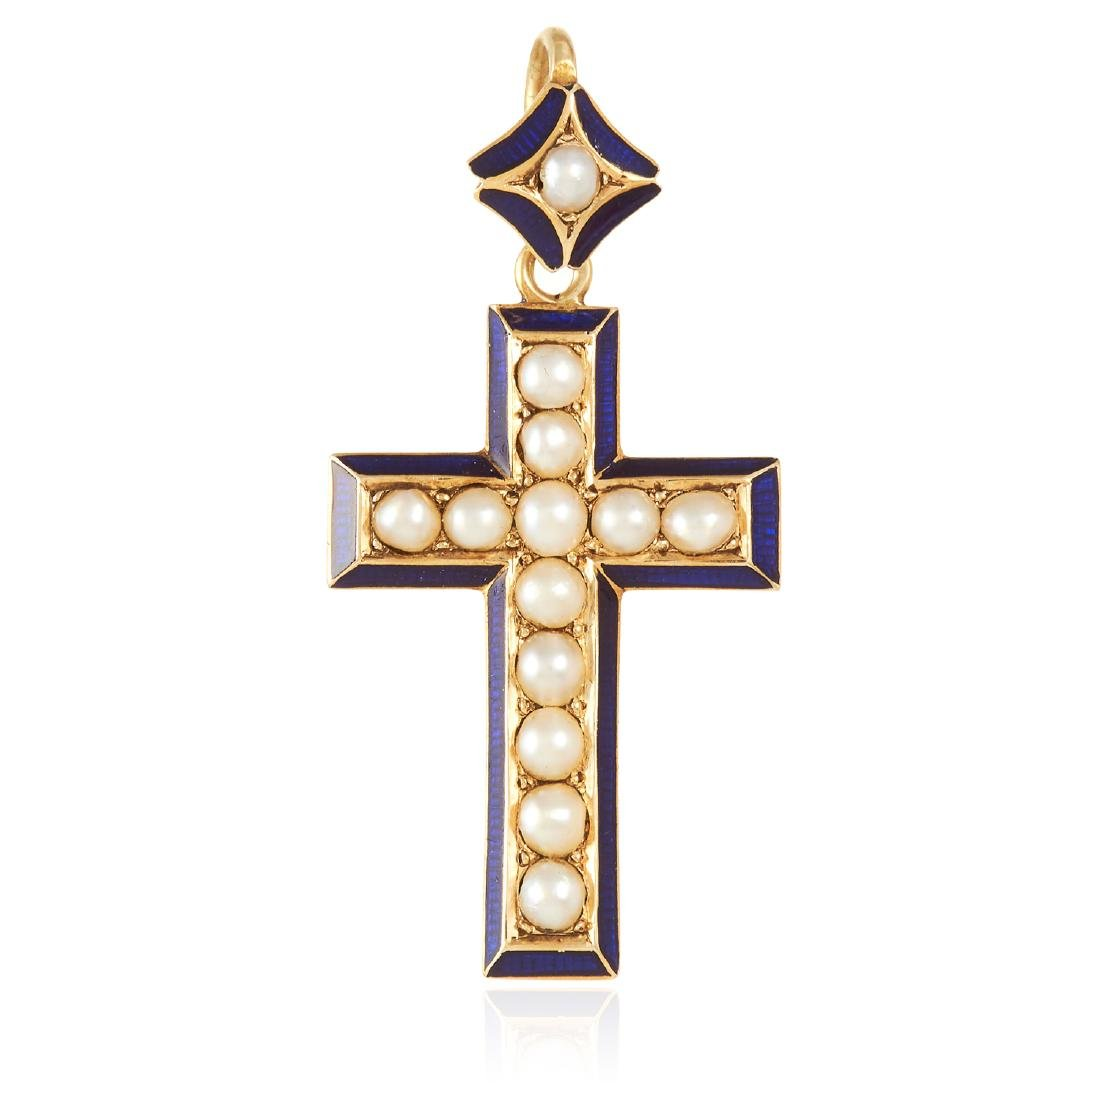 AN ANTIQUE PEARL AND ENAMEL CROSS PENDANT in high carat